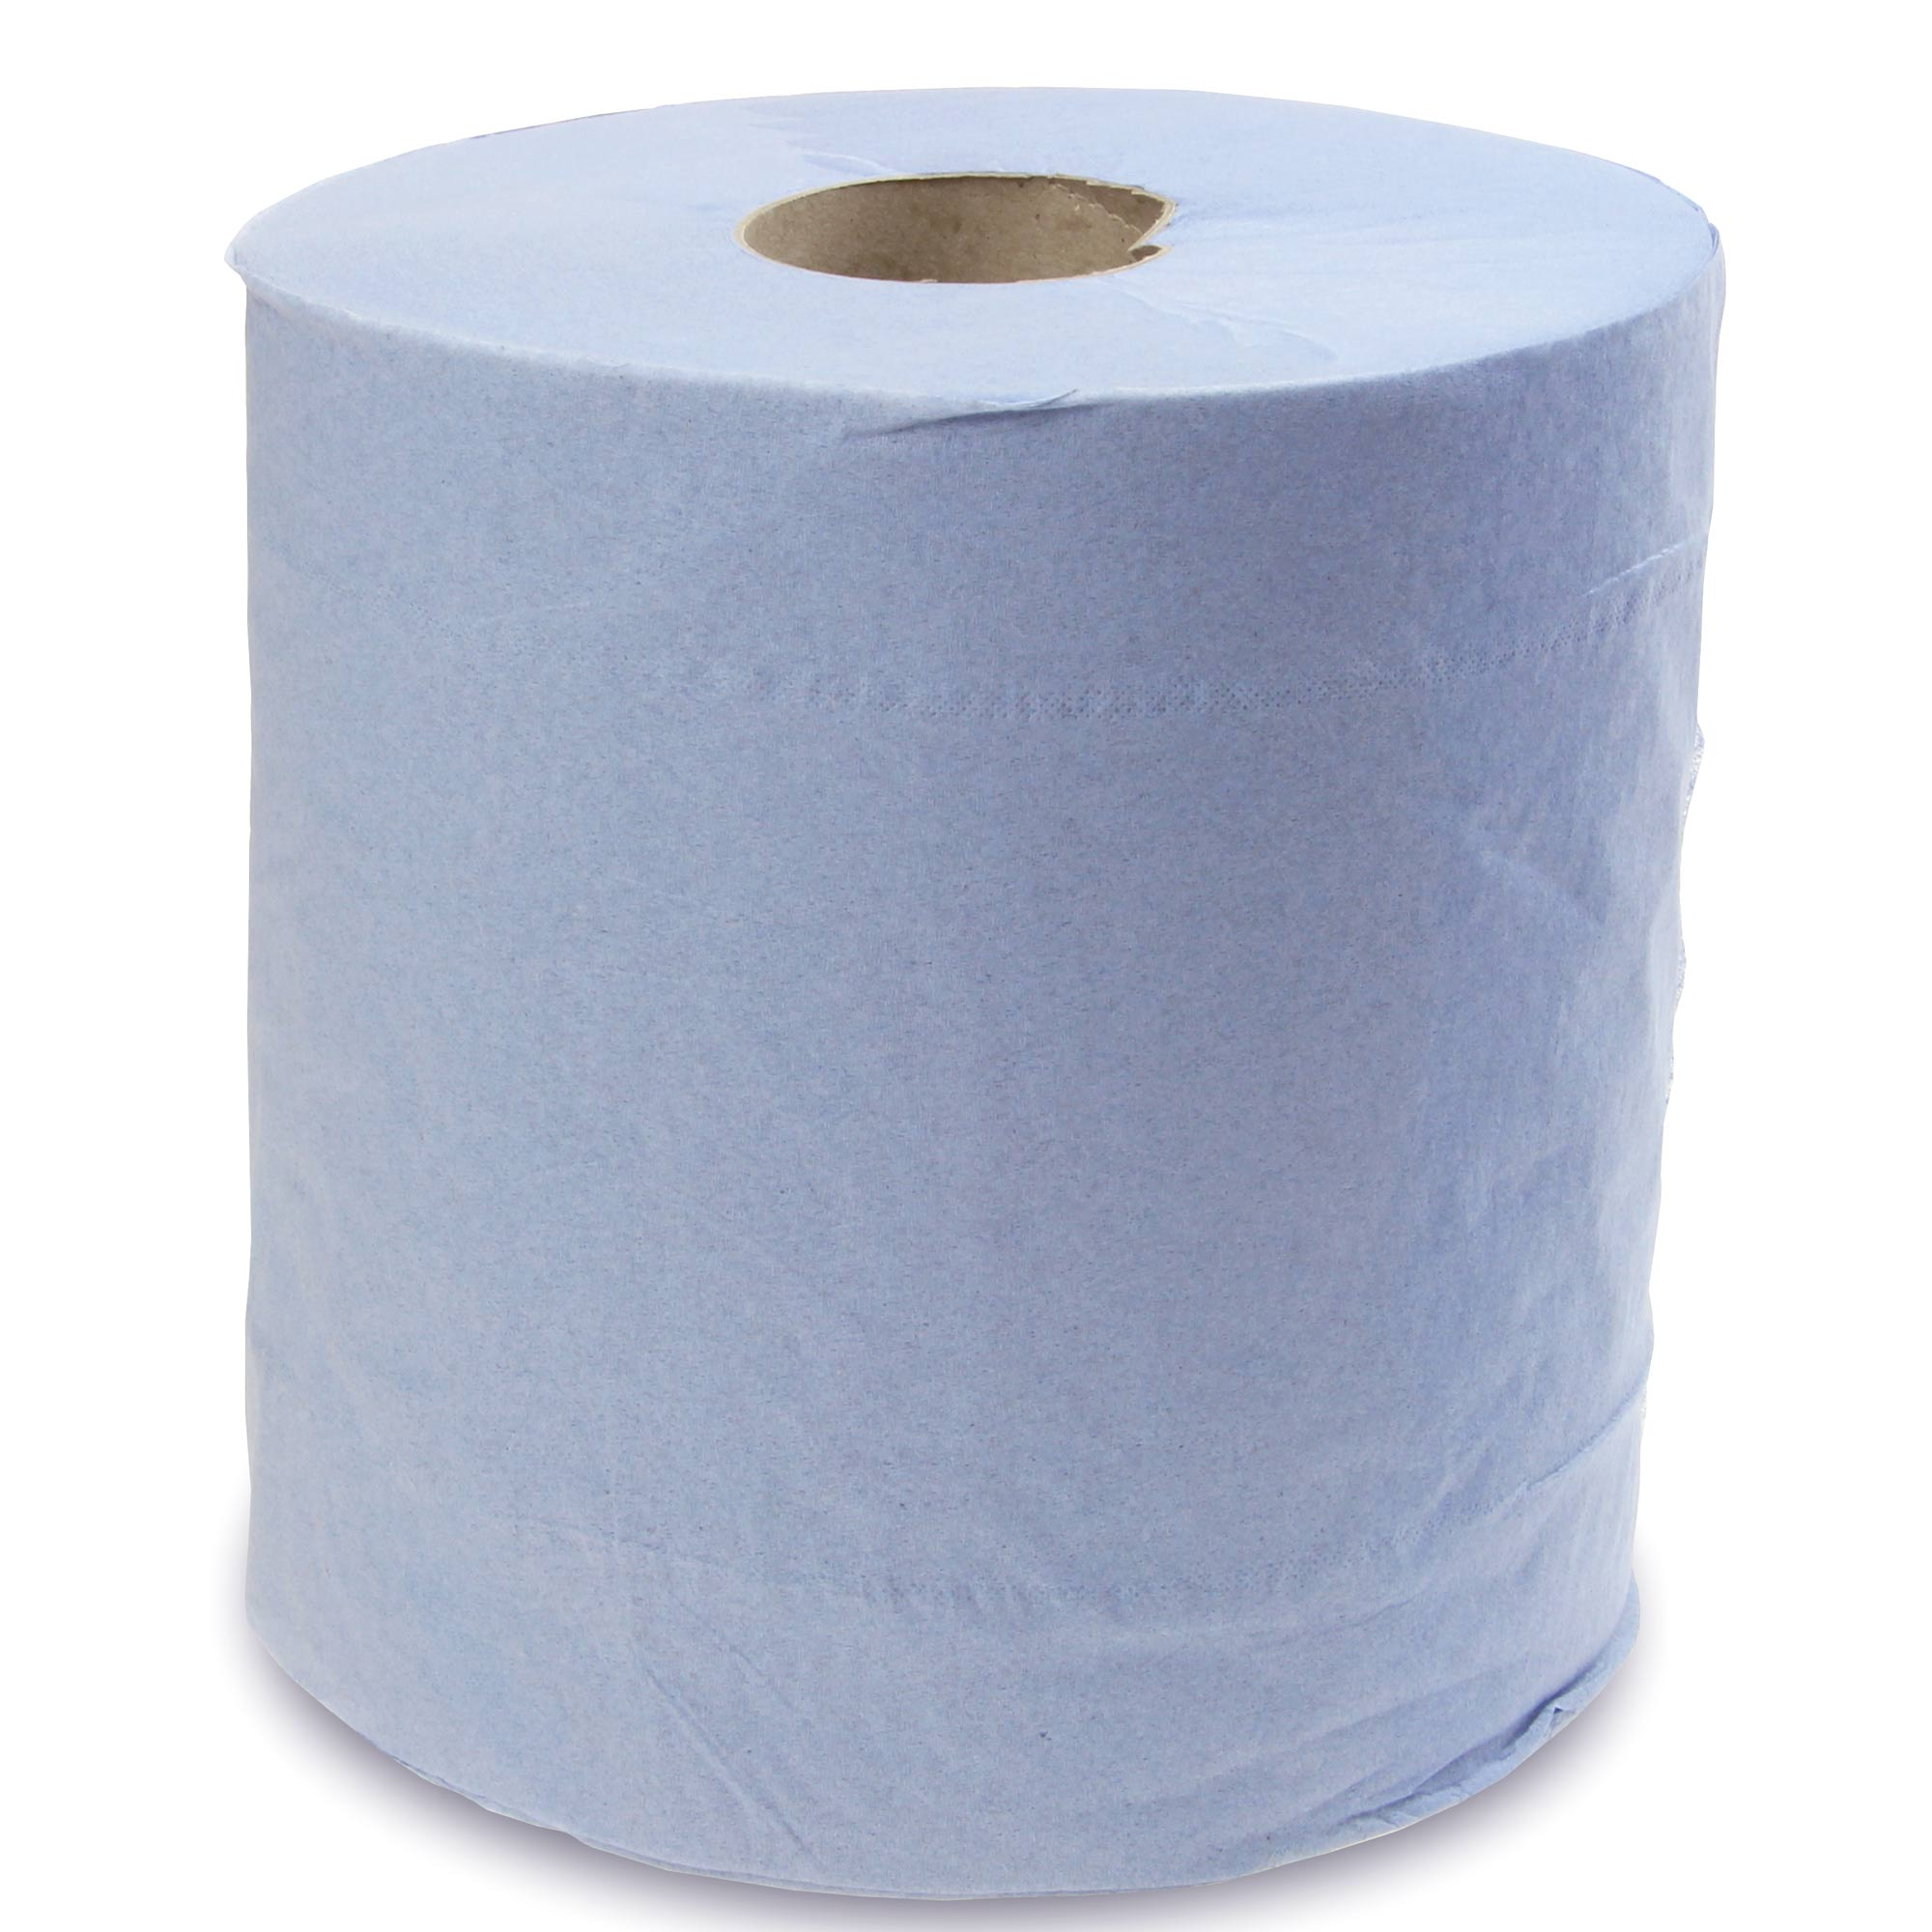 Centre Feed Rolls Blue Hand Towel Paper Towel Kitchen